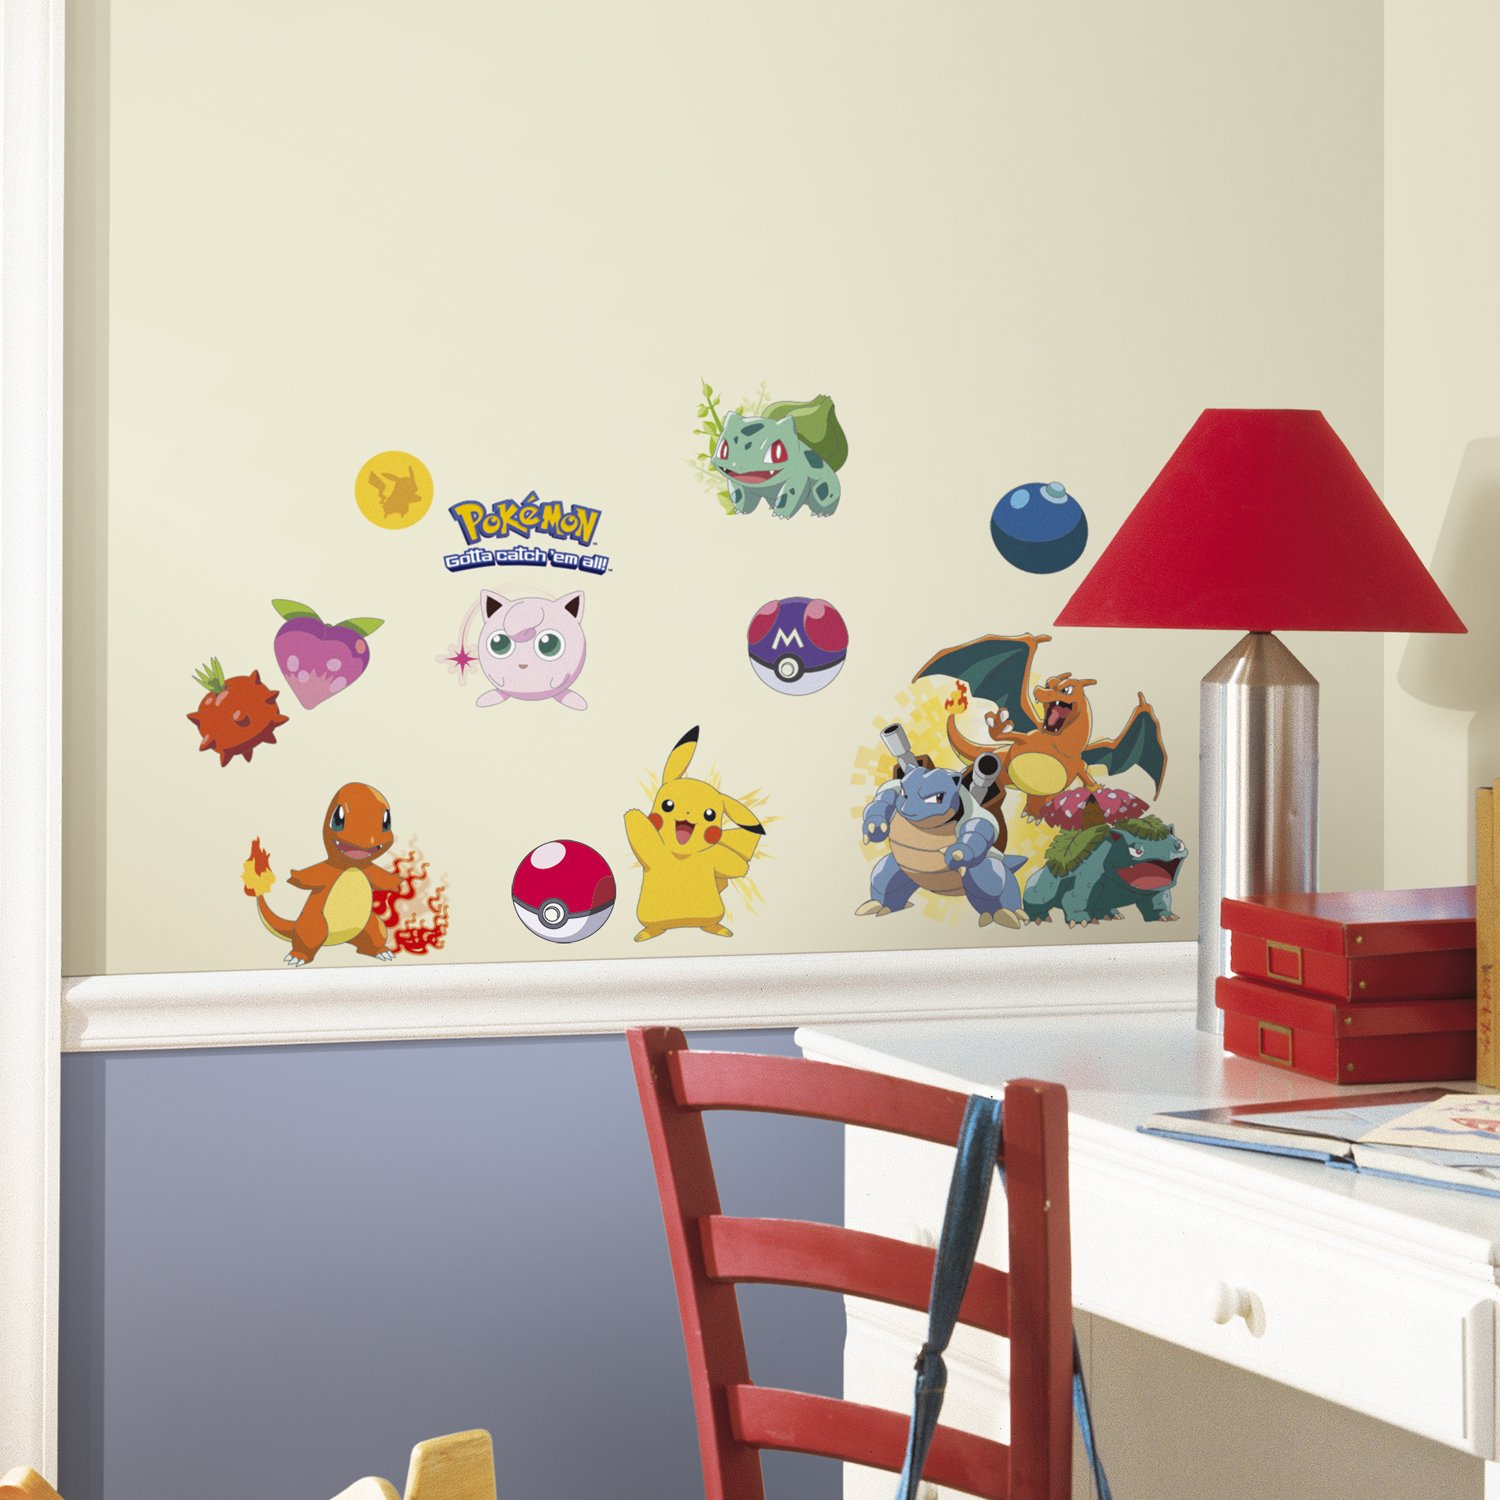 Roommates rmk2535scs pokemon iconic peel and stick wall decals roommates rmk2535scs pokemon iconic peel and stick wall decals amazon amipublicfo Choice Image